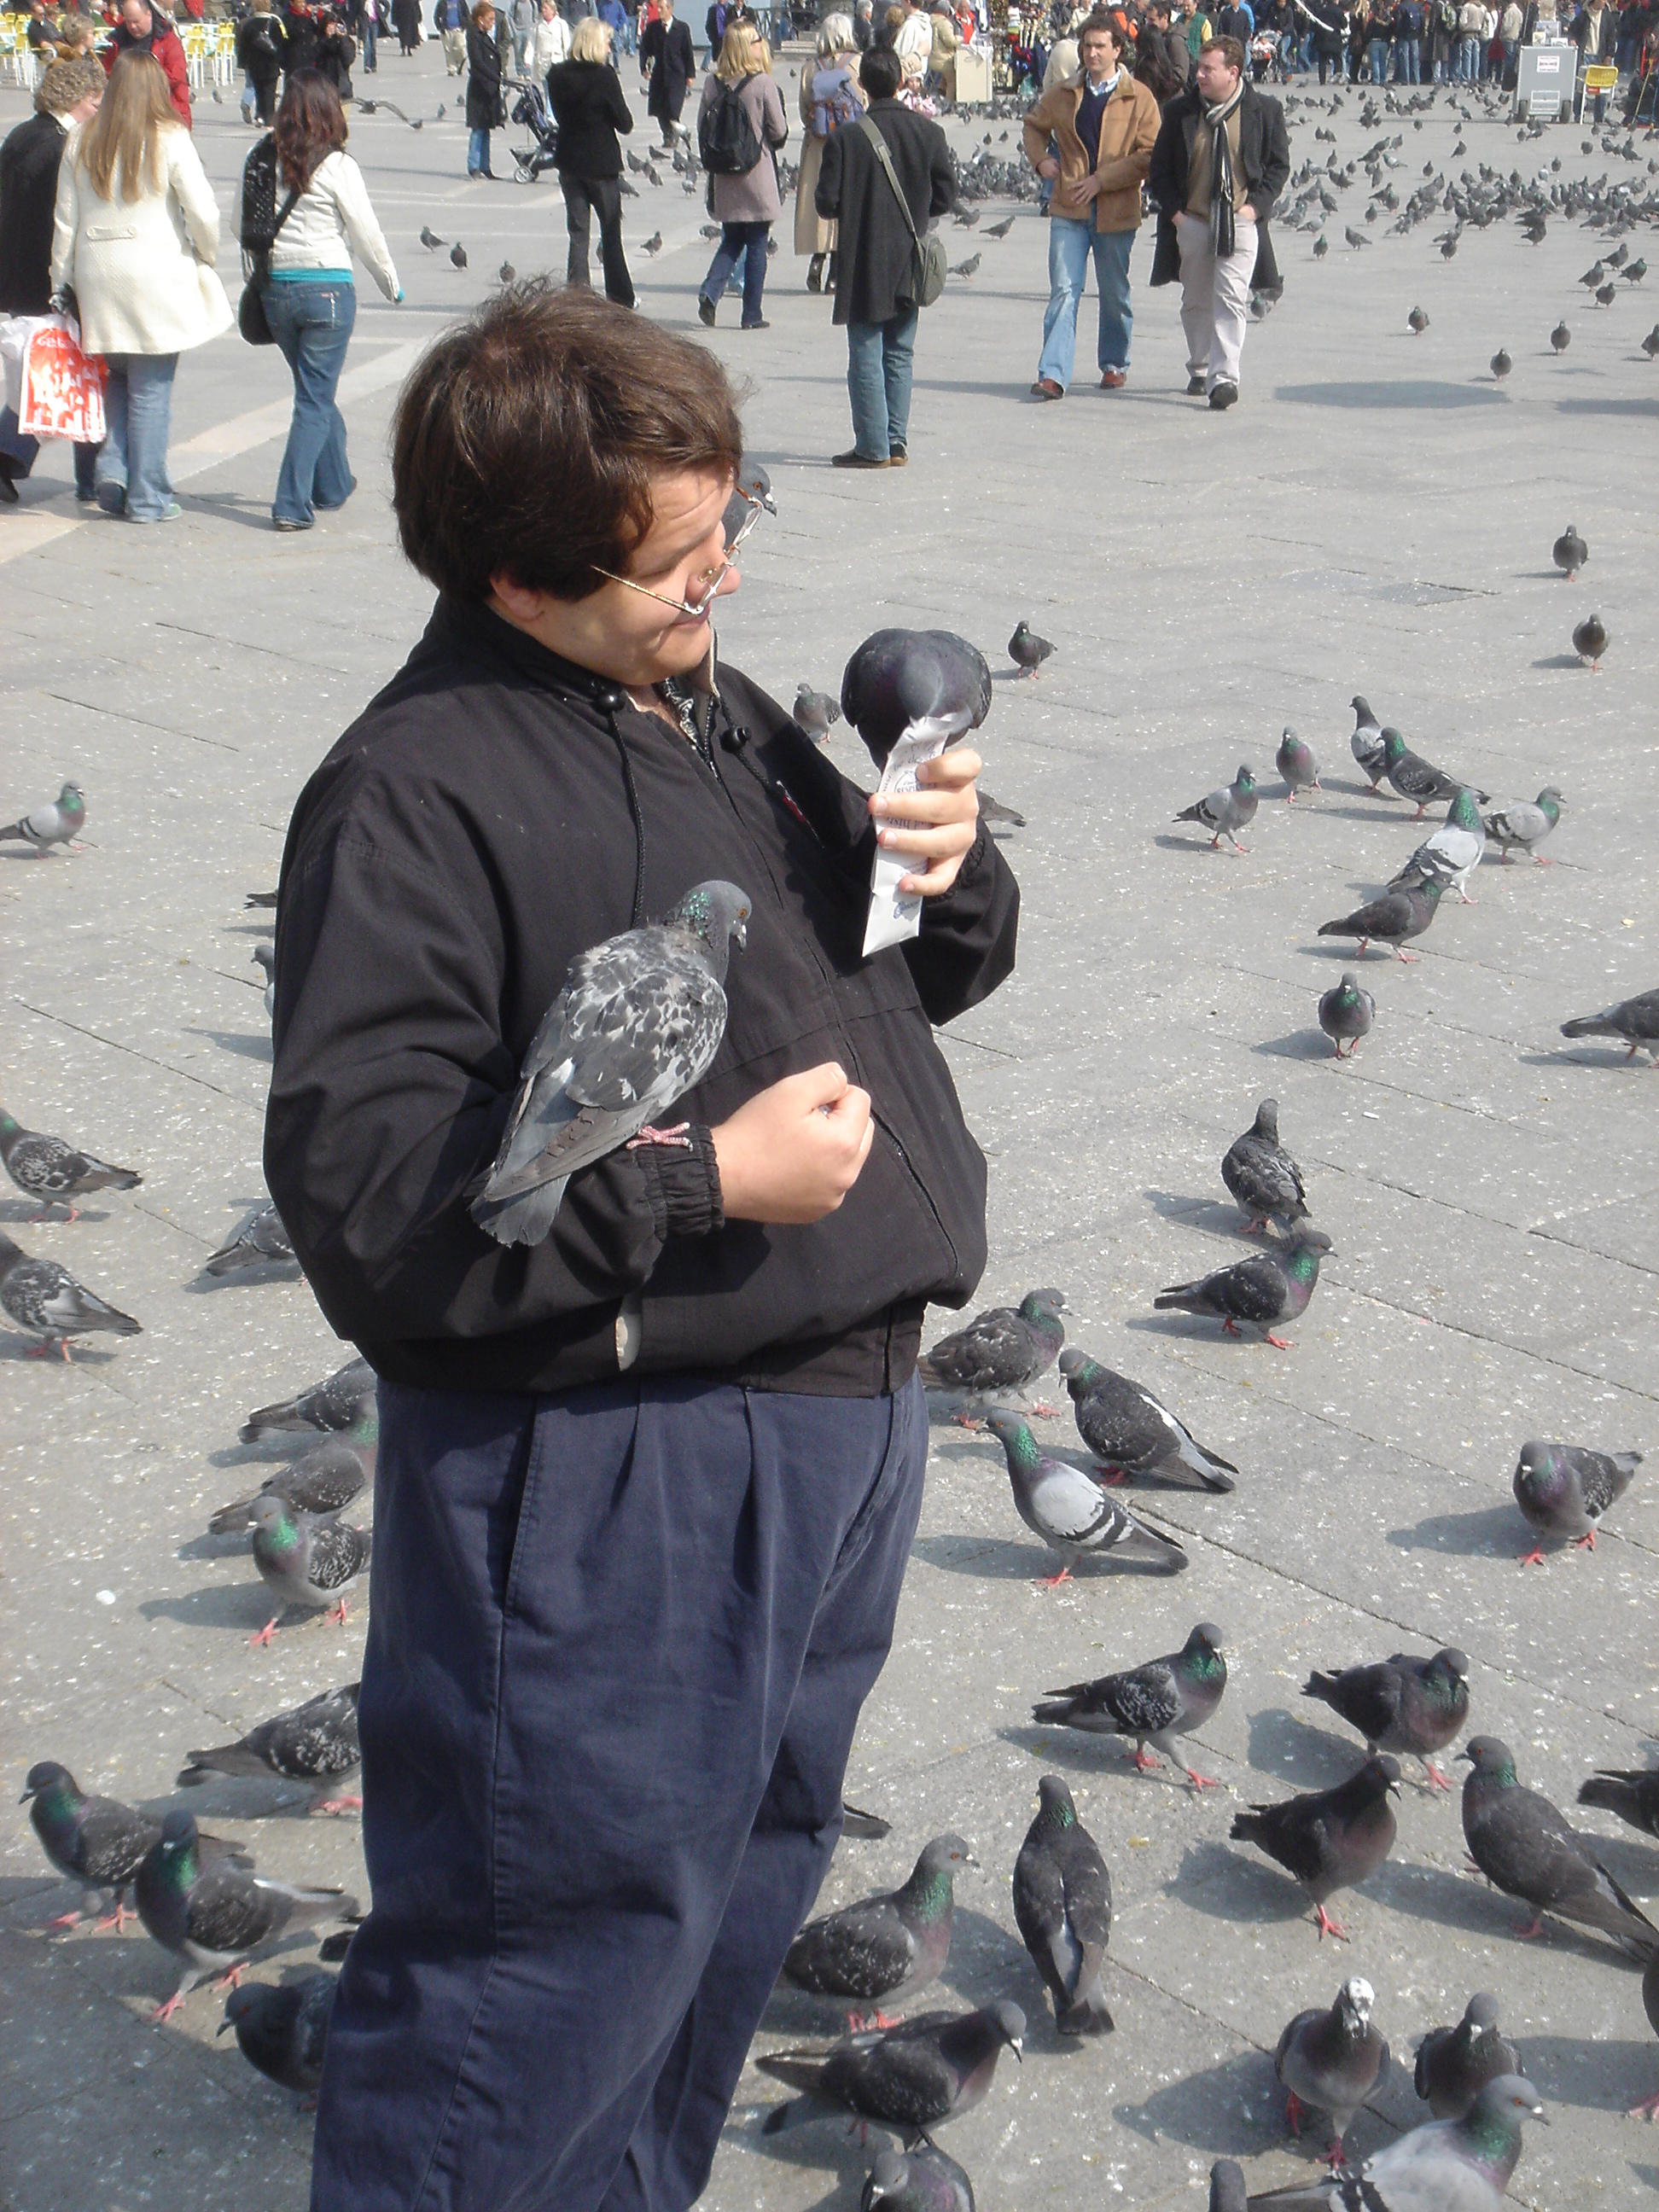 Me with pampered pidgeons by XD-385